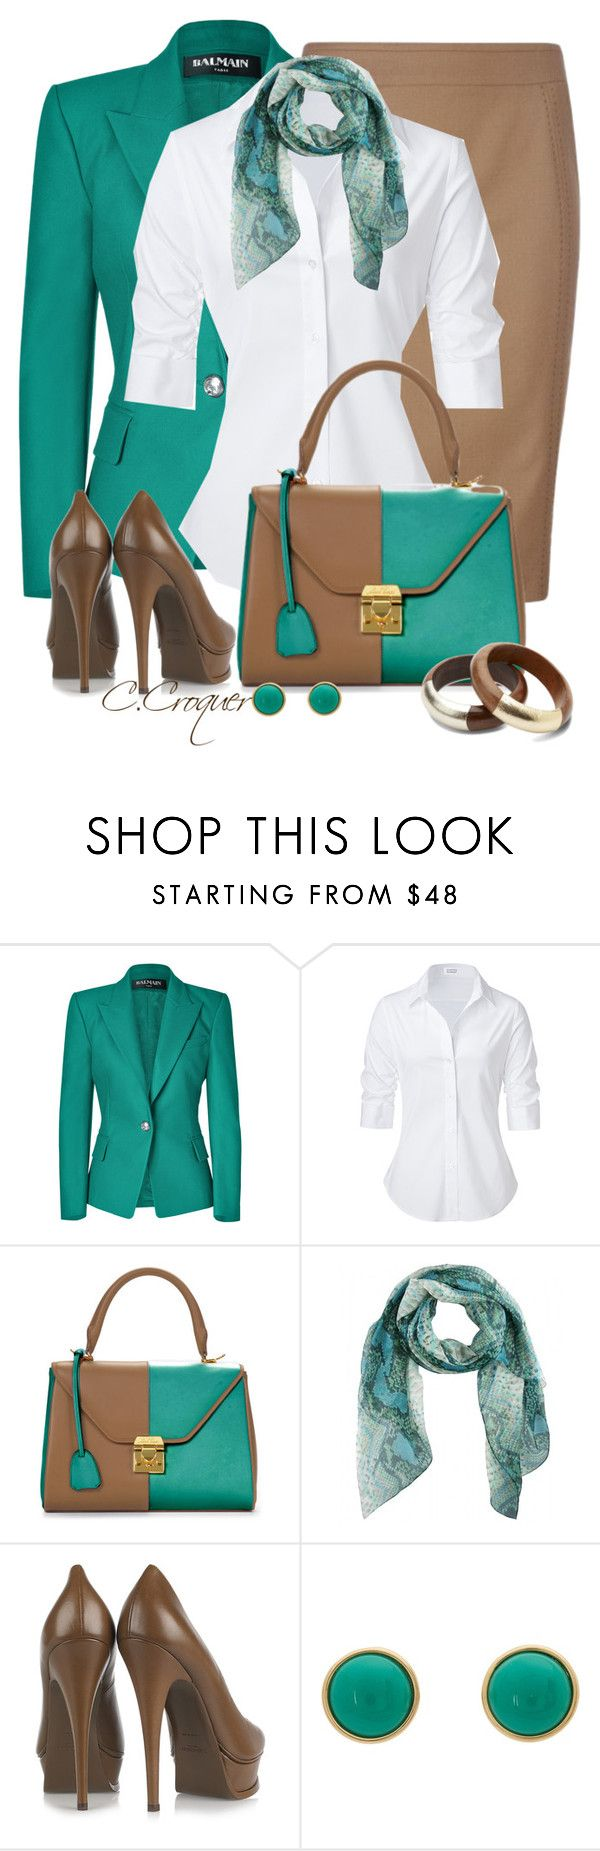 """""""Mark Cross Colorblock Bag"""" by ccroquer ❤ liked on Polyvore featuring Balmain, Ted Baker, Steffen Schraut, Mark Cross, Yves Saint Laurent, Marc by Marc Jacobs and TOMS"""